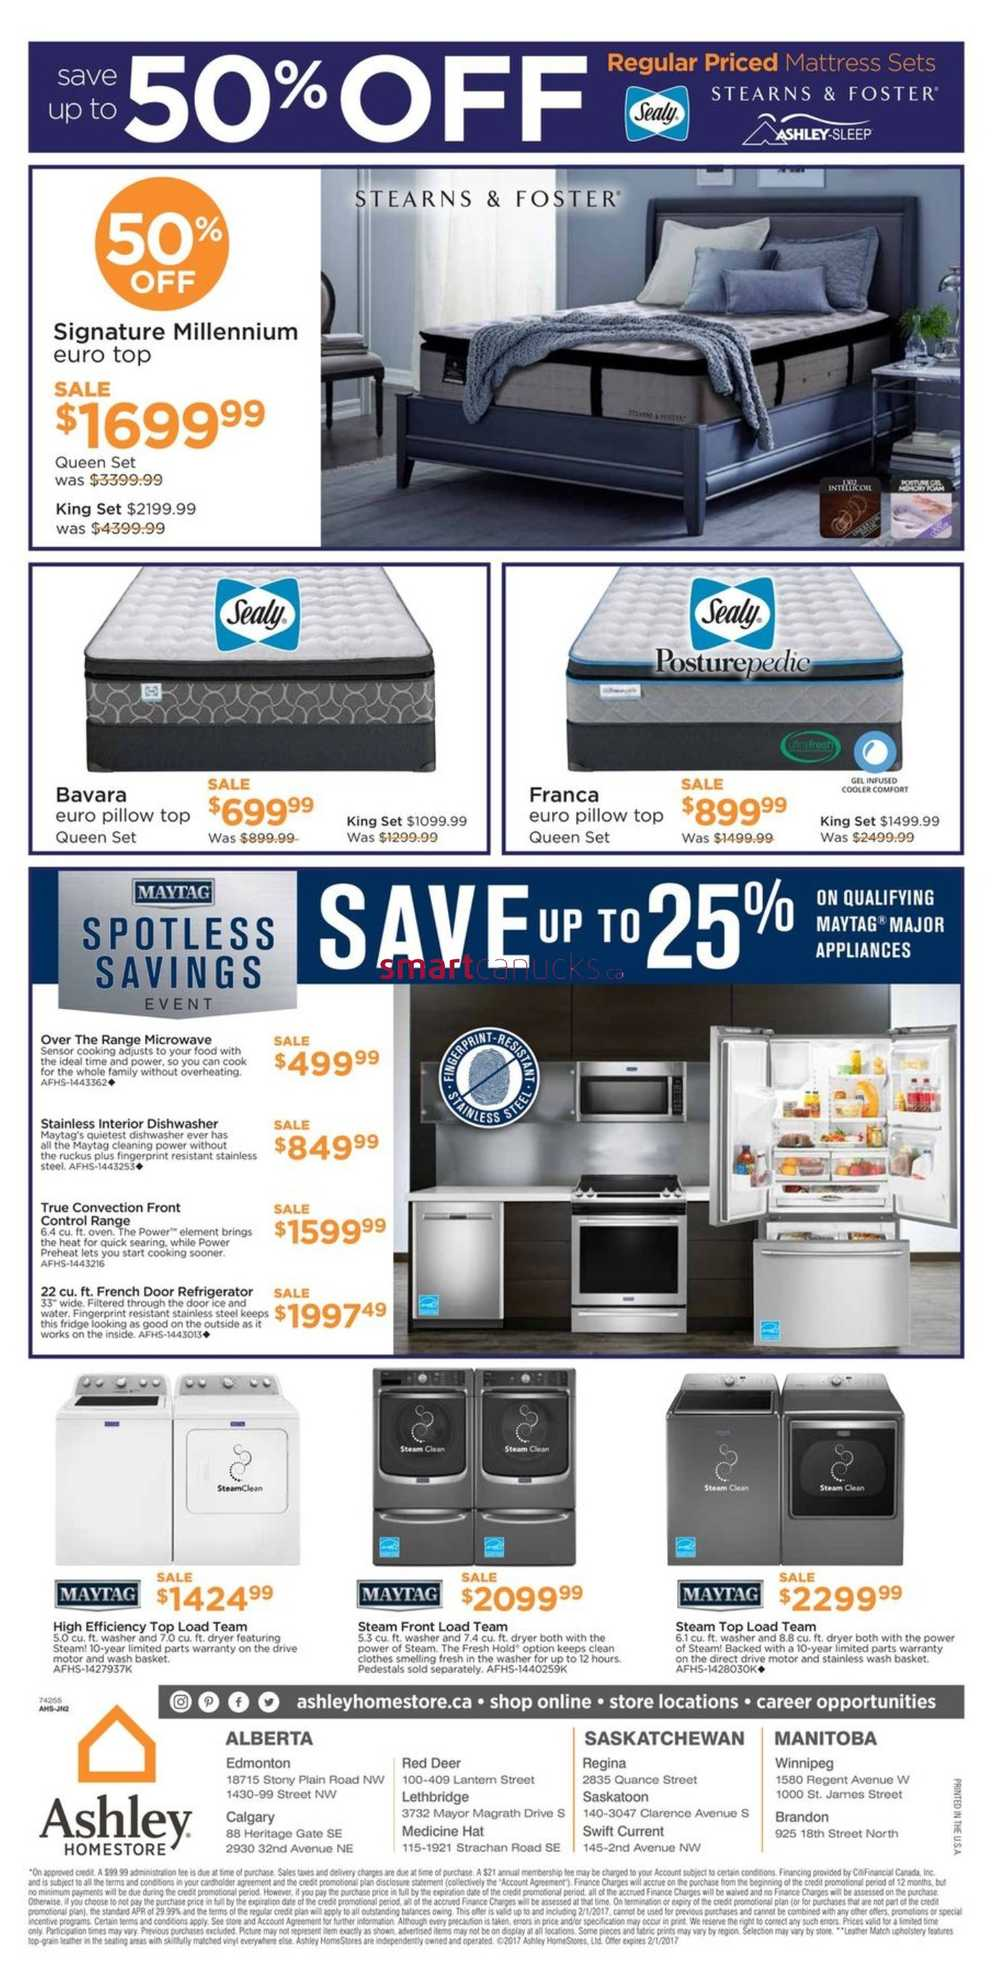 Ashley Homestore West Flyer January 26 To February 1